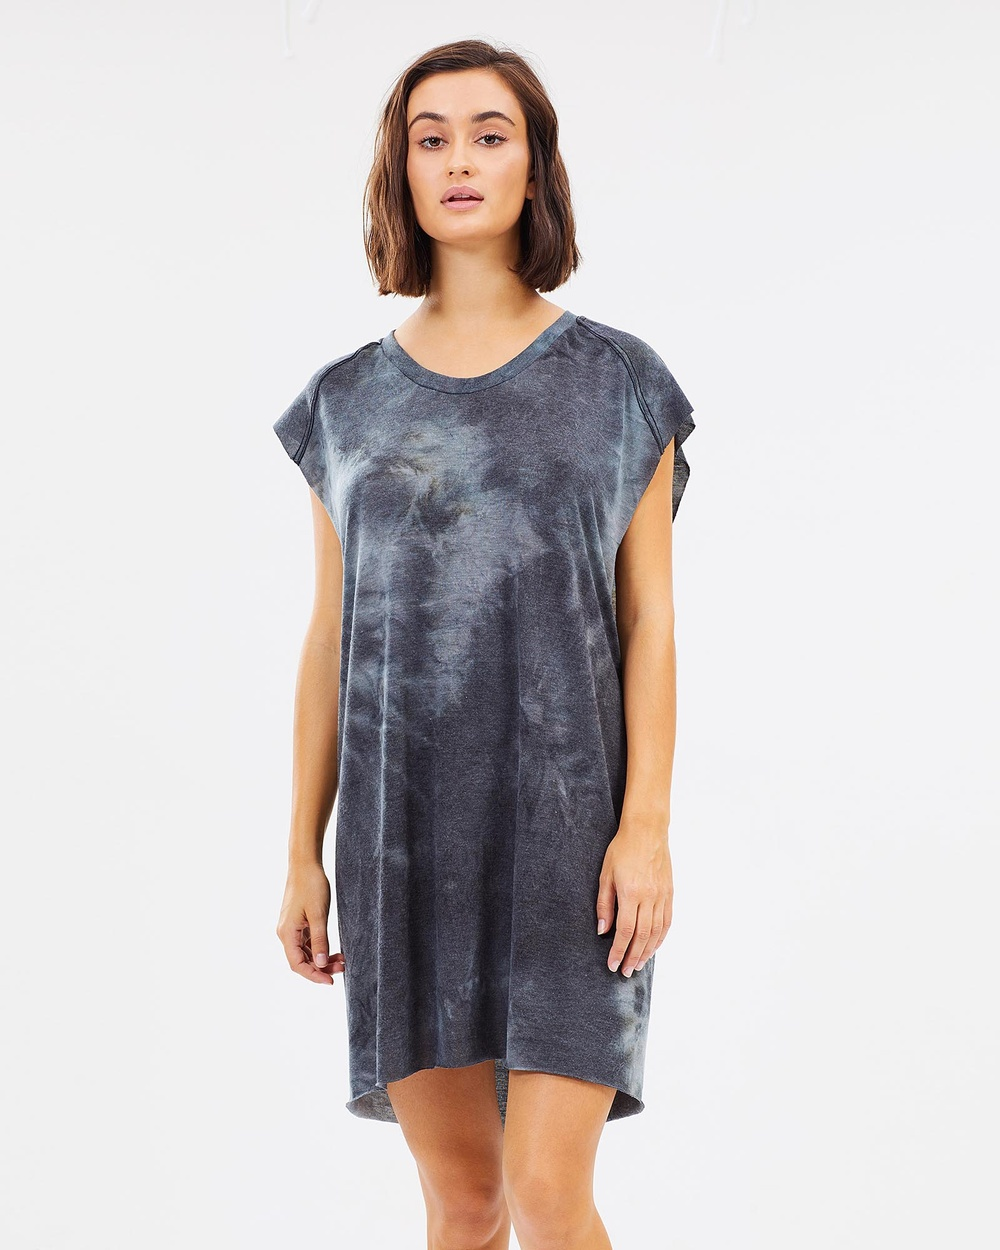 Surrounded By Ghosts The Borax Muscle Tee Dress Dresses Blue The Borax Muscle Tee Dress